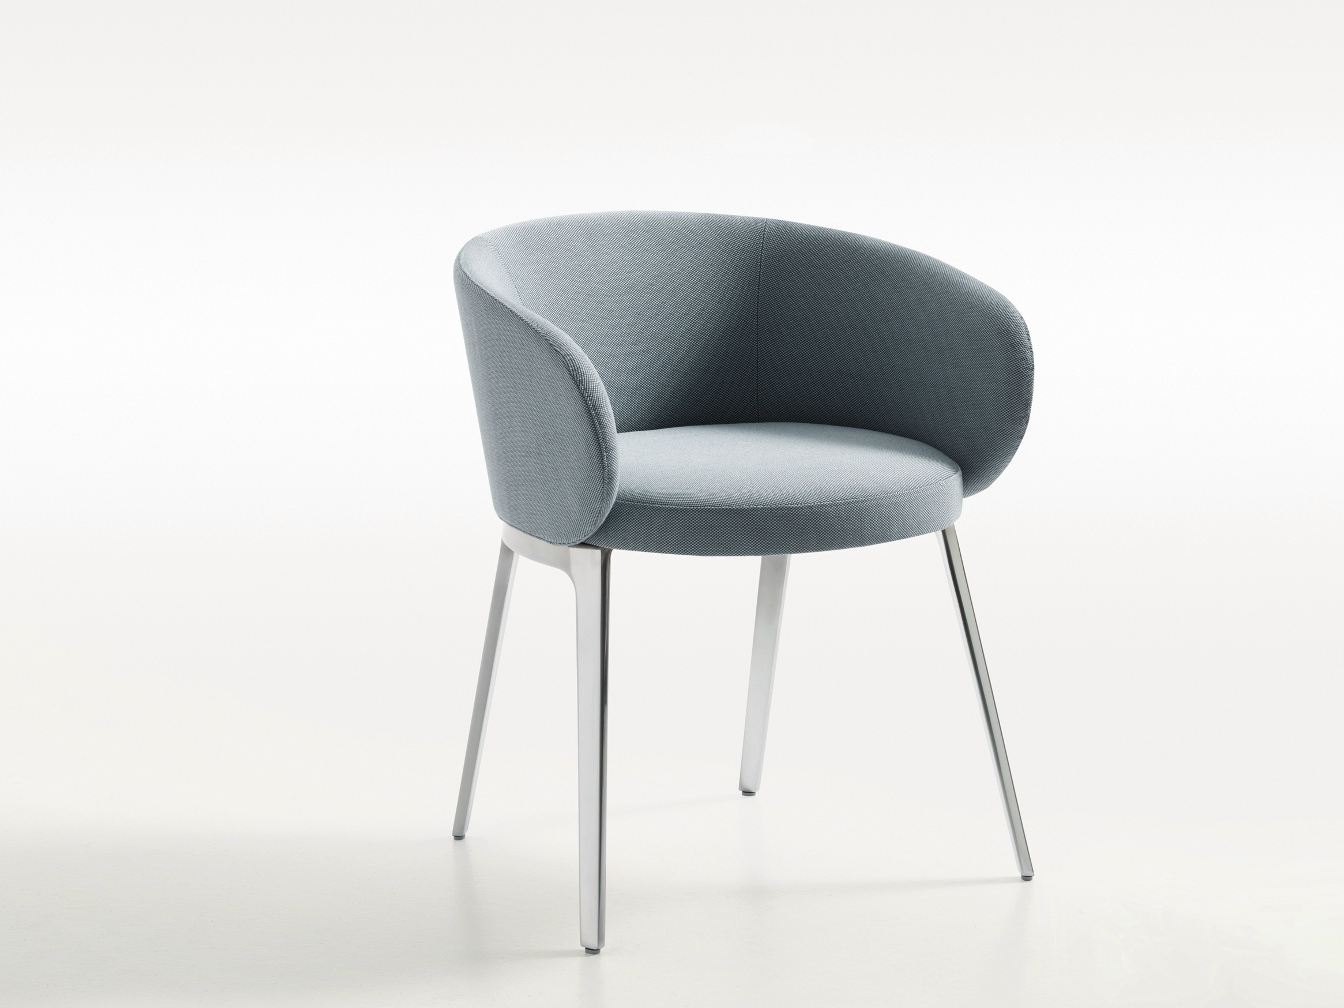 ROC Dining Chair by Uwe Fischer for COR | Sohomod Blog